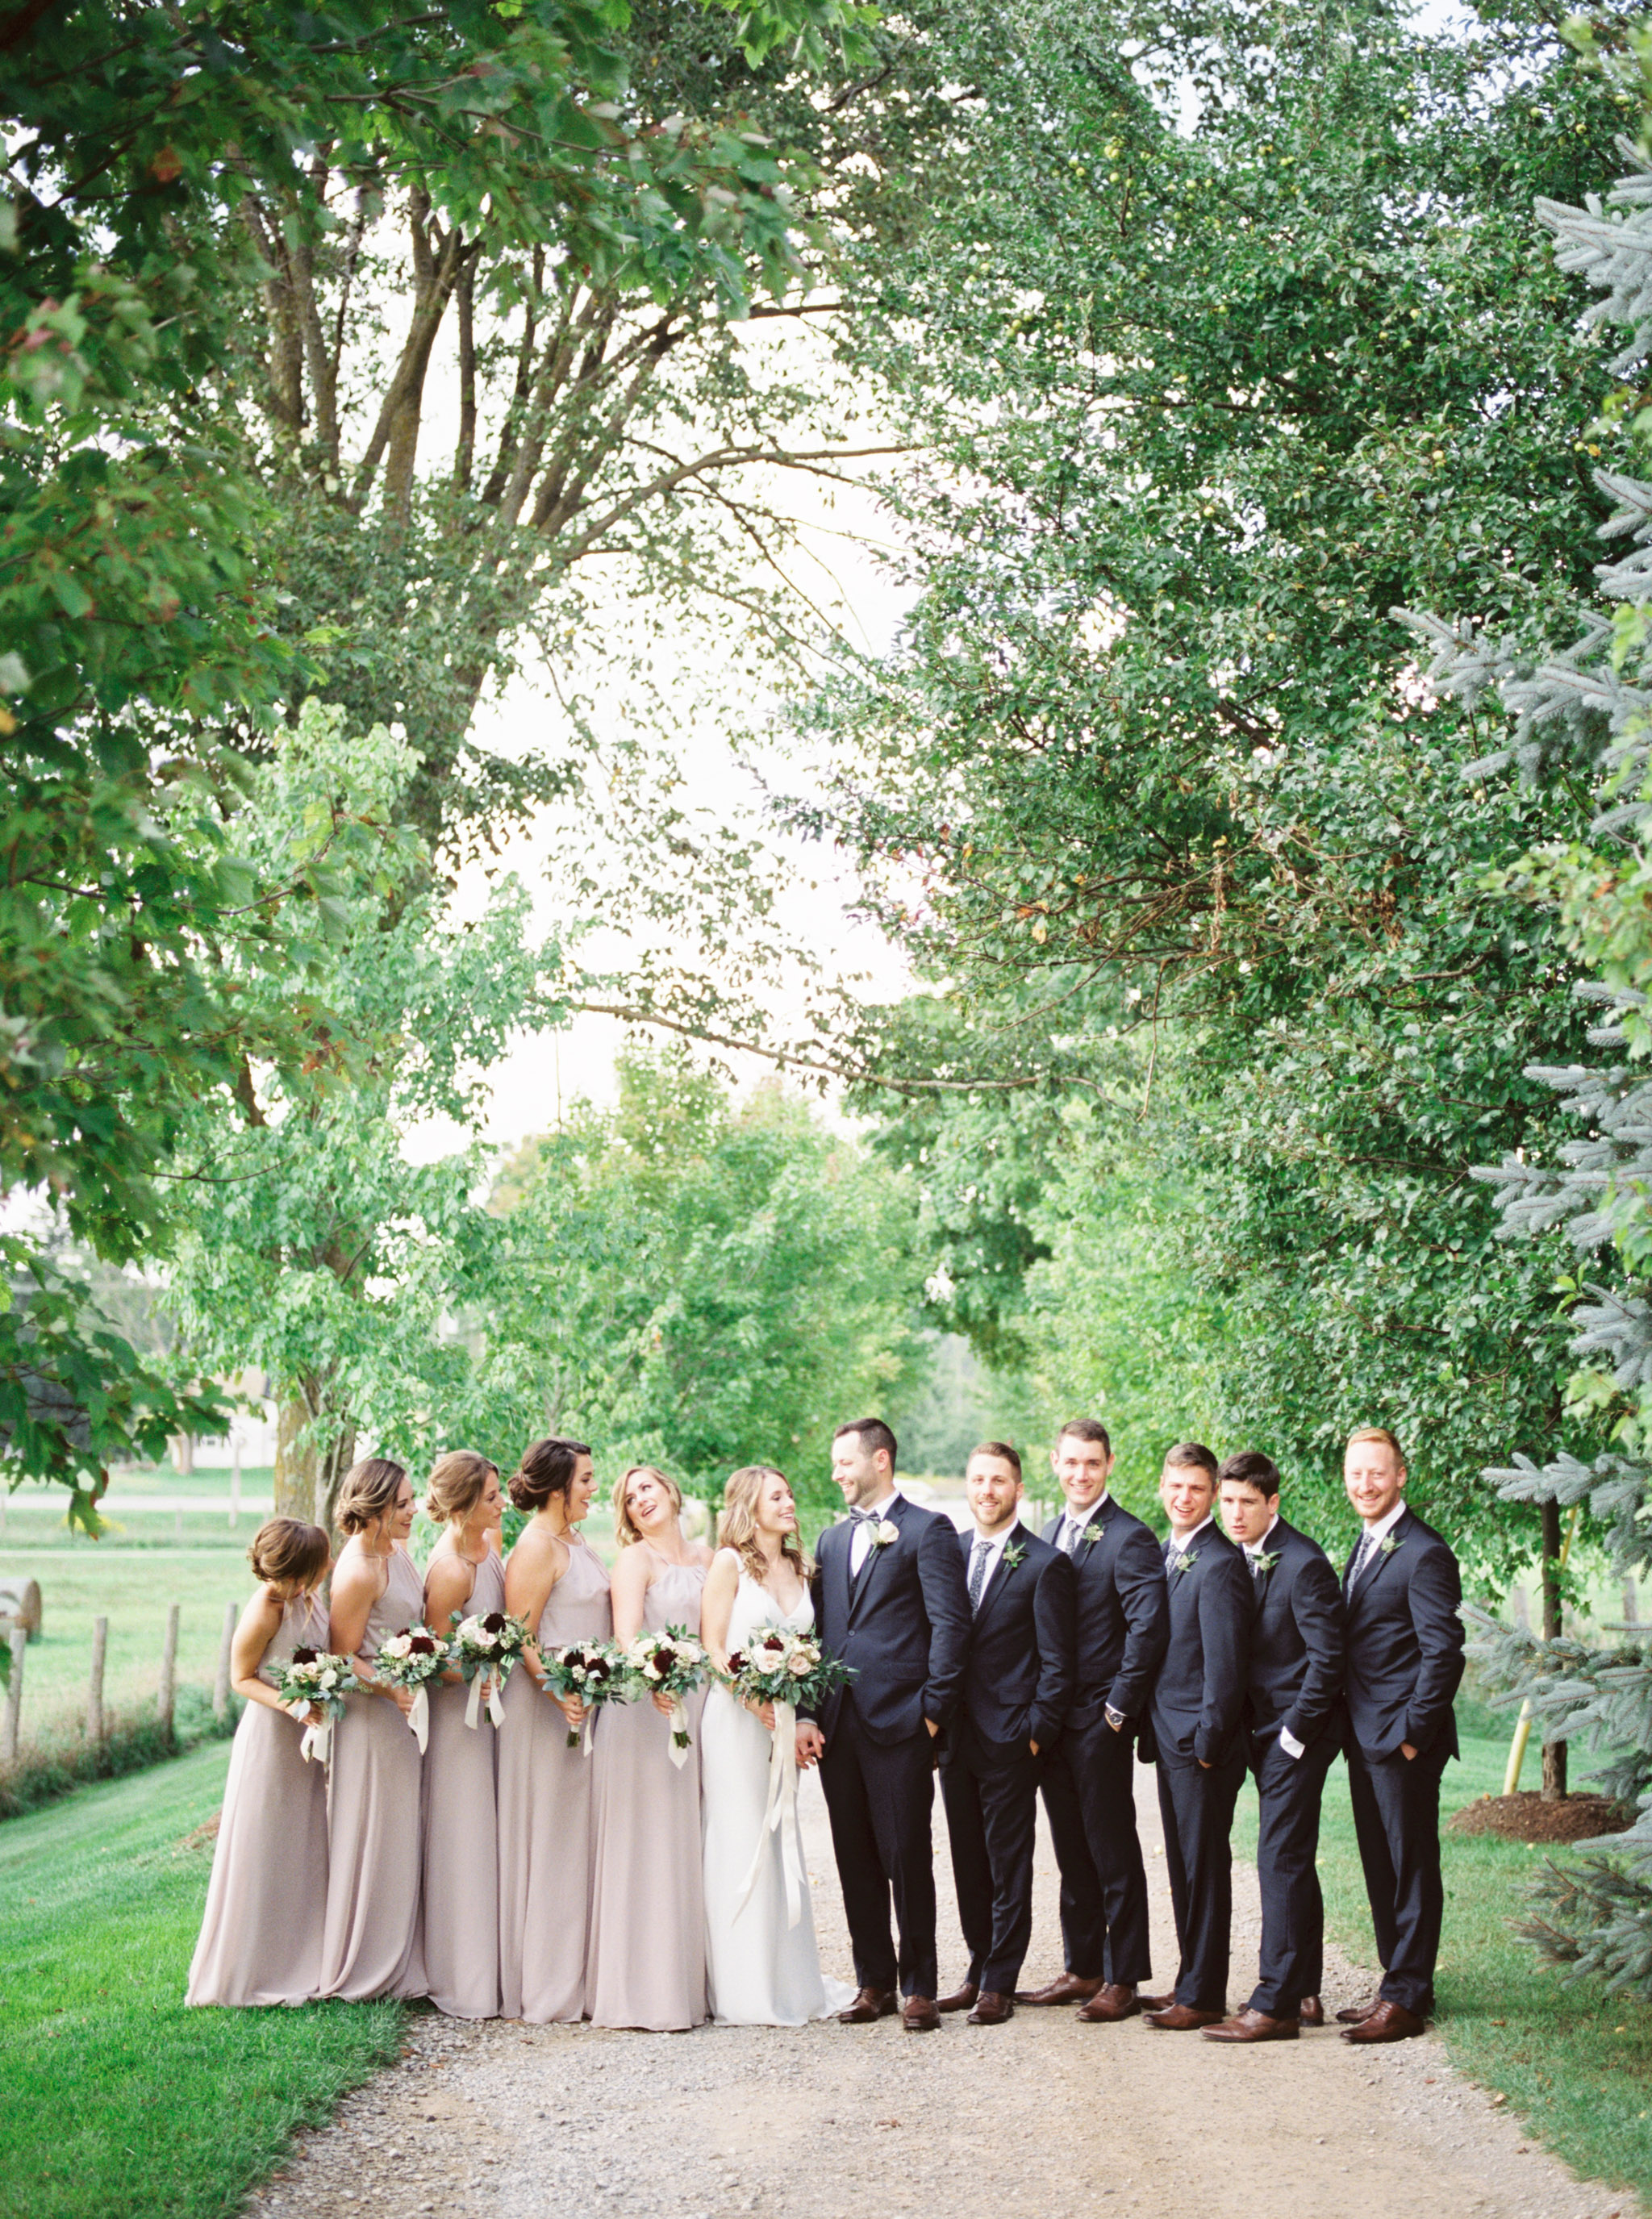 Bridal party photos at a farm.